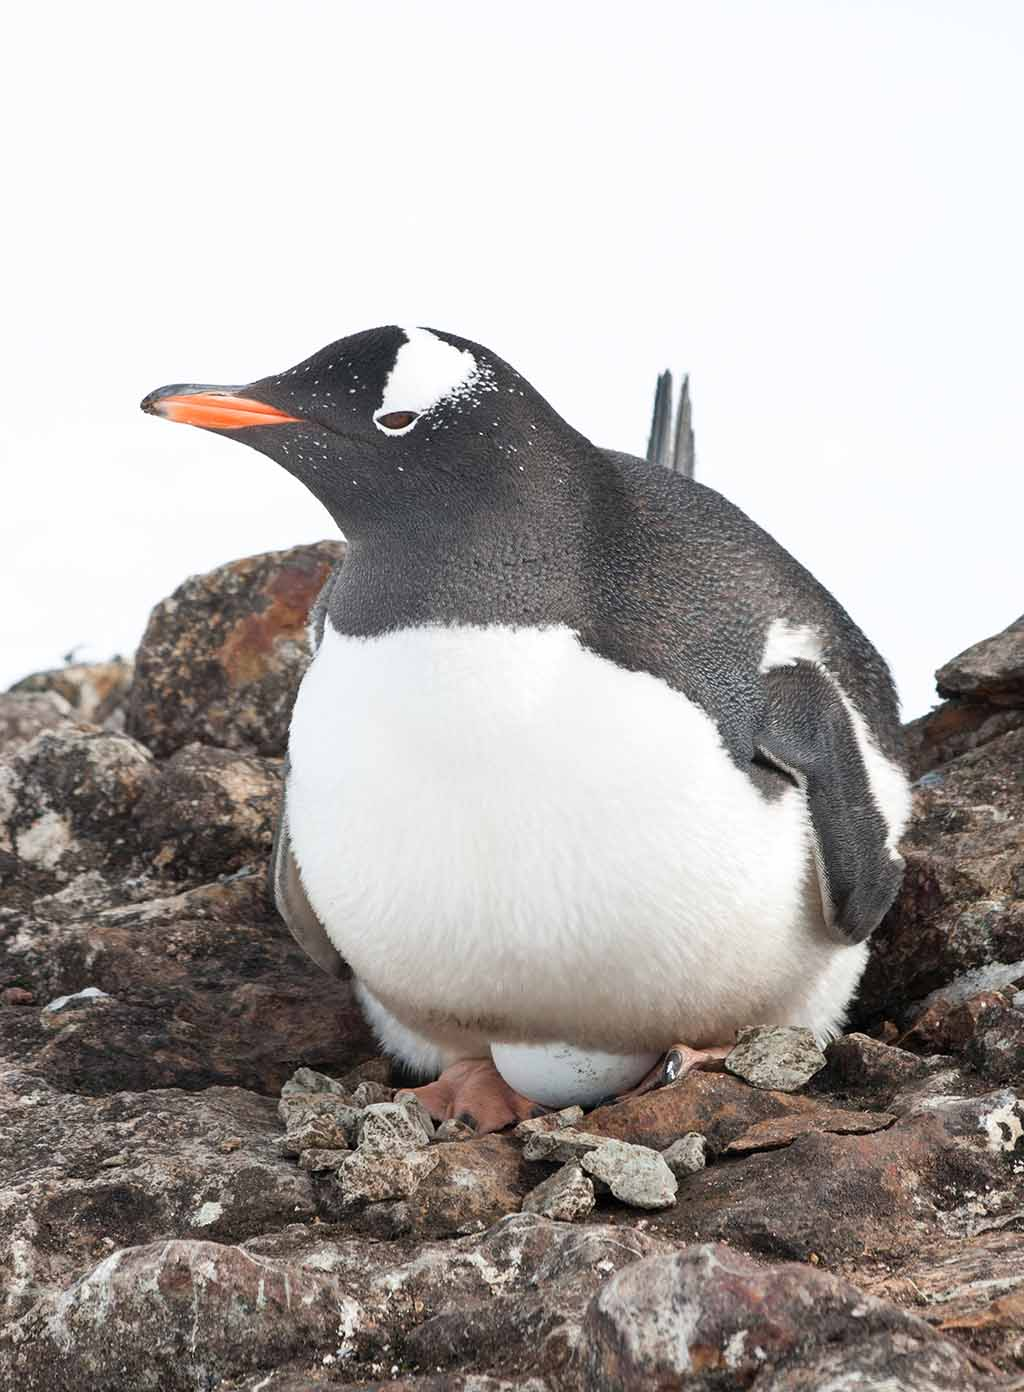 The long-tailed Gentoo penguin incubates eggs